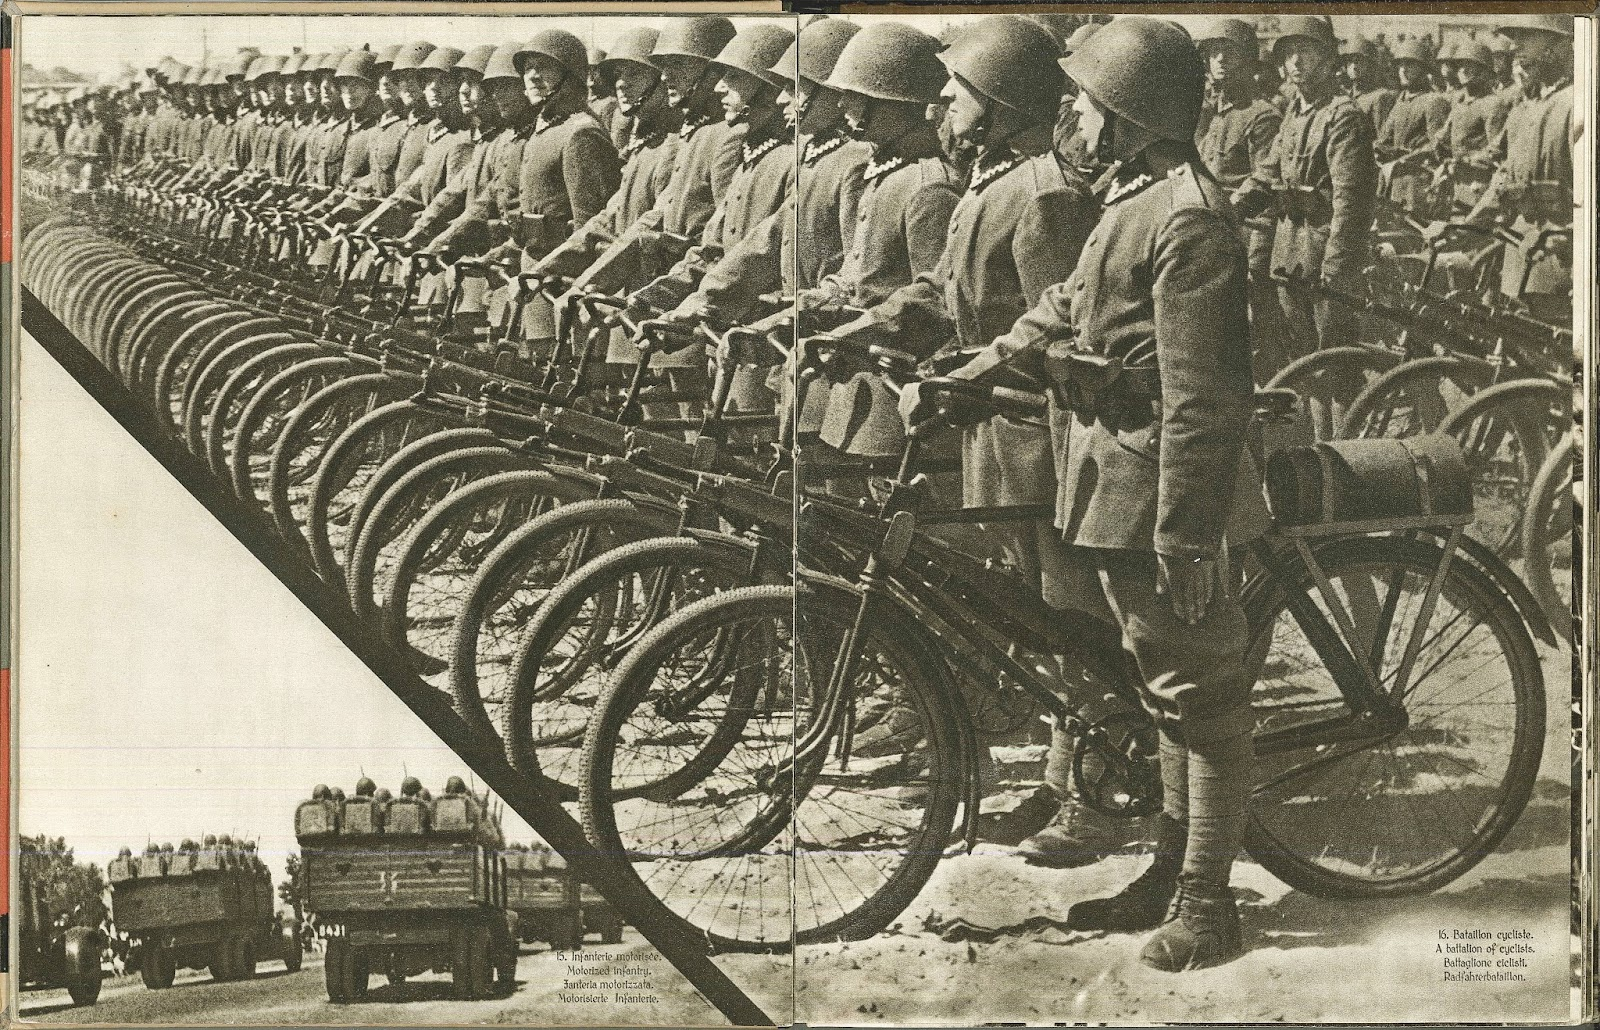 A photograph showing a line of uniformed men with bicycles. In the lower left corner is a smaller photograph of men in army trucks.